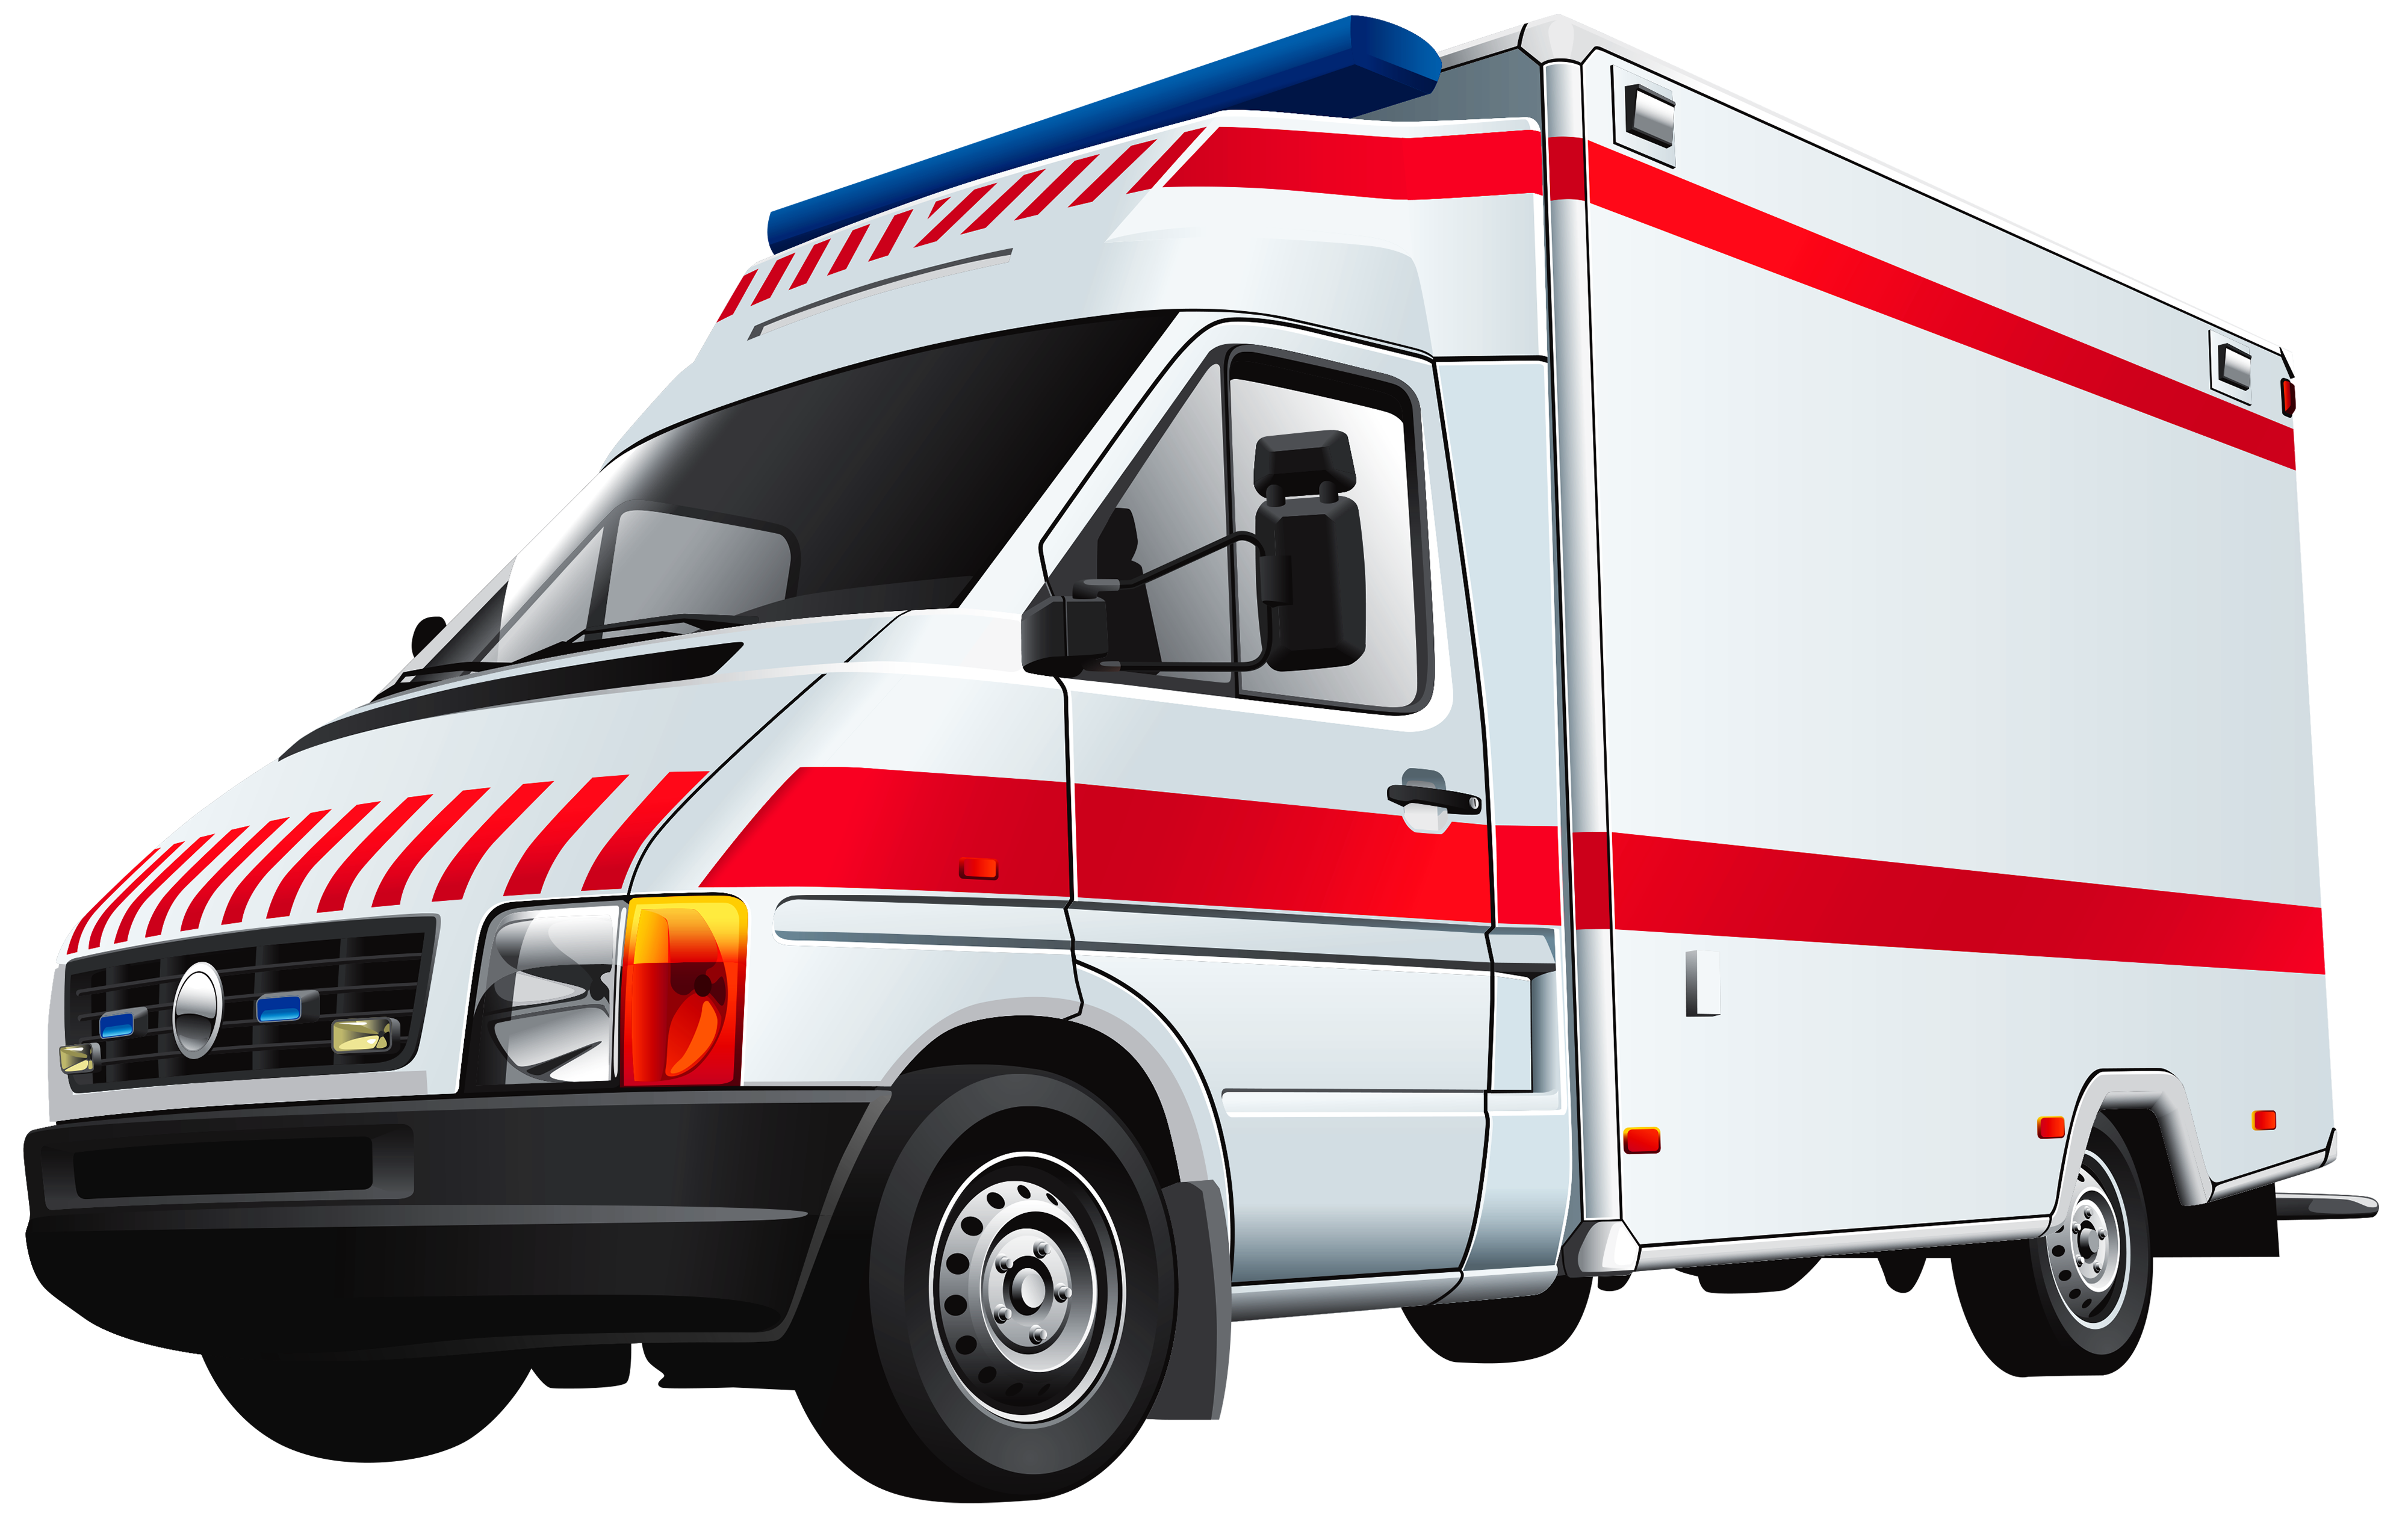 hospital transparent ambulance clipart